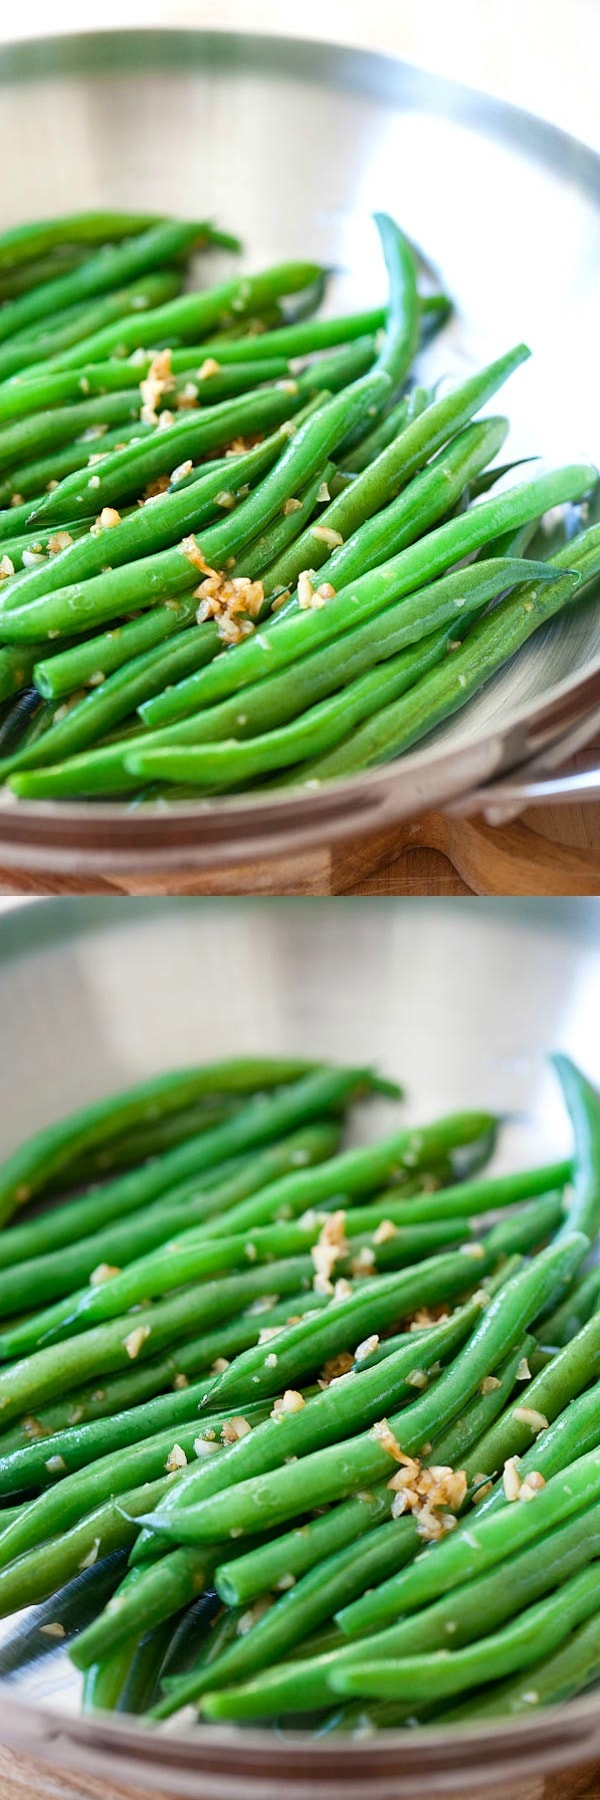 Garlic Green Beans - 10-min stir-fry green beans recipe with garlic. Super healthy, easy and budget-friendly for the entire family.| rasamalaysia.com